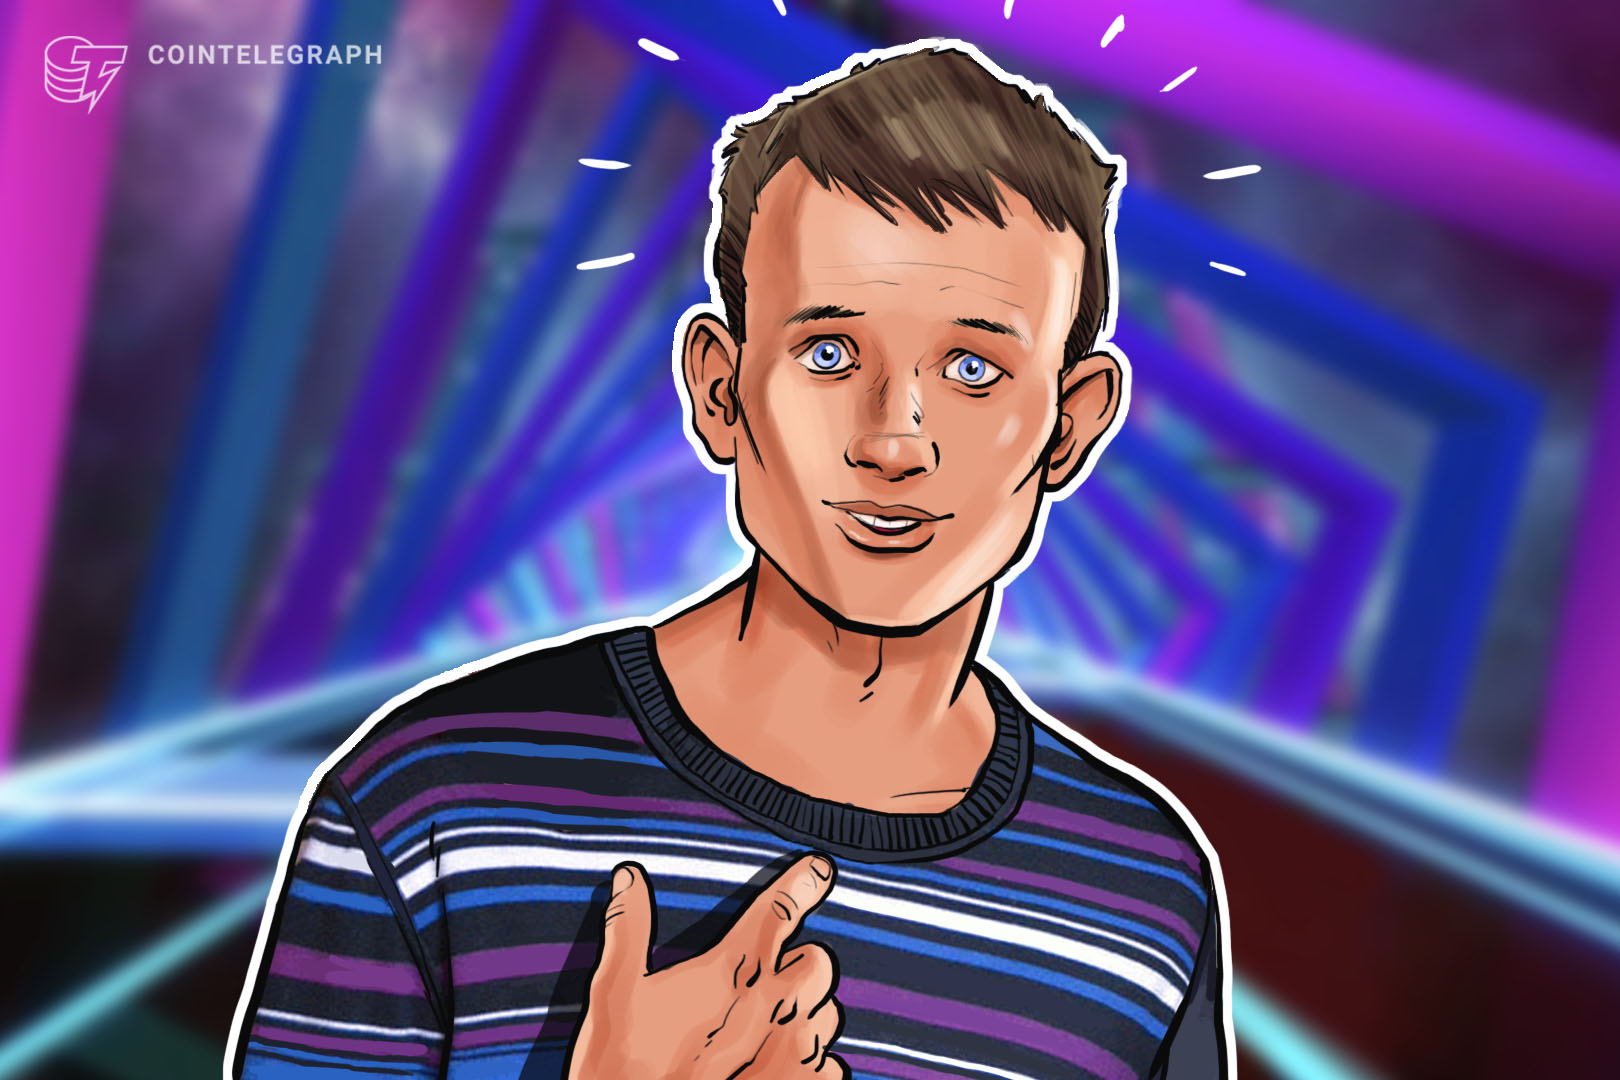 Vitalik Buterin has made $4.3M from his $25K investment in Dogecoin … so far